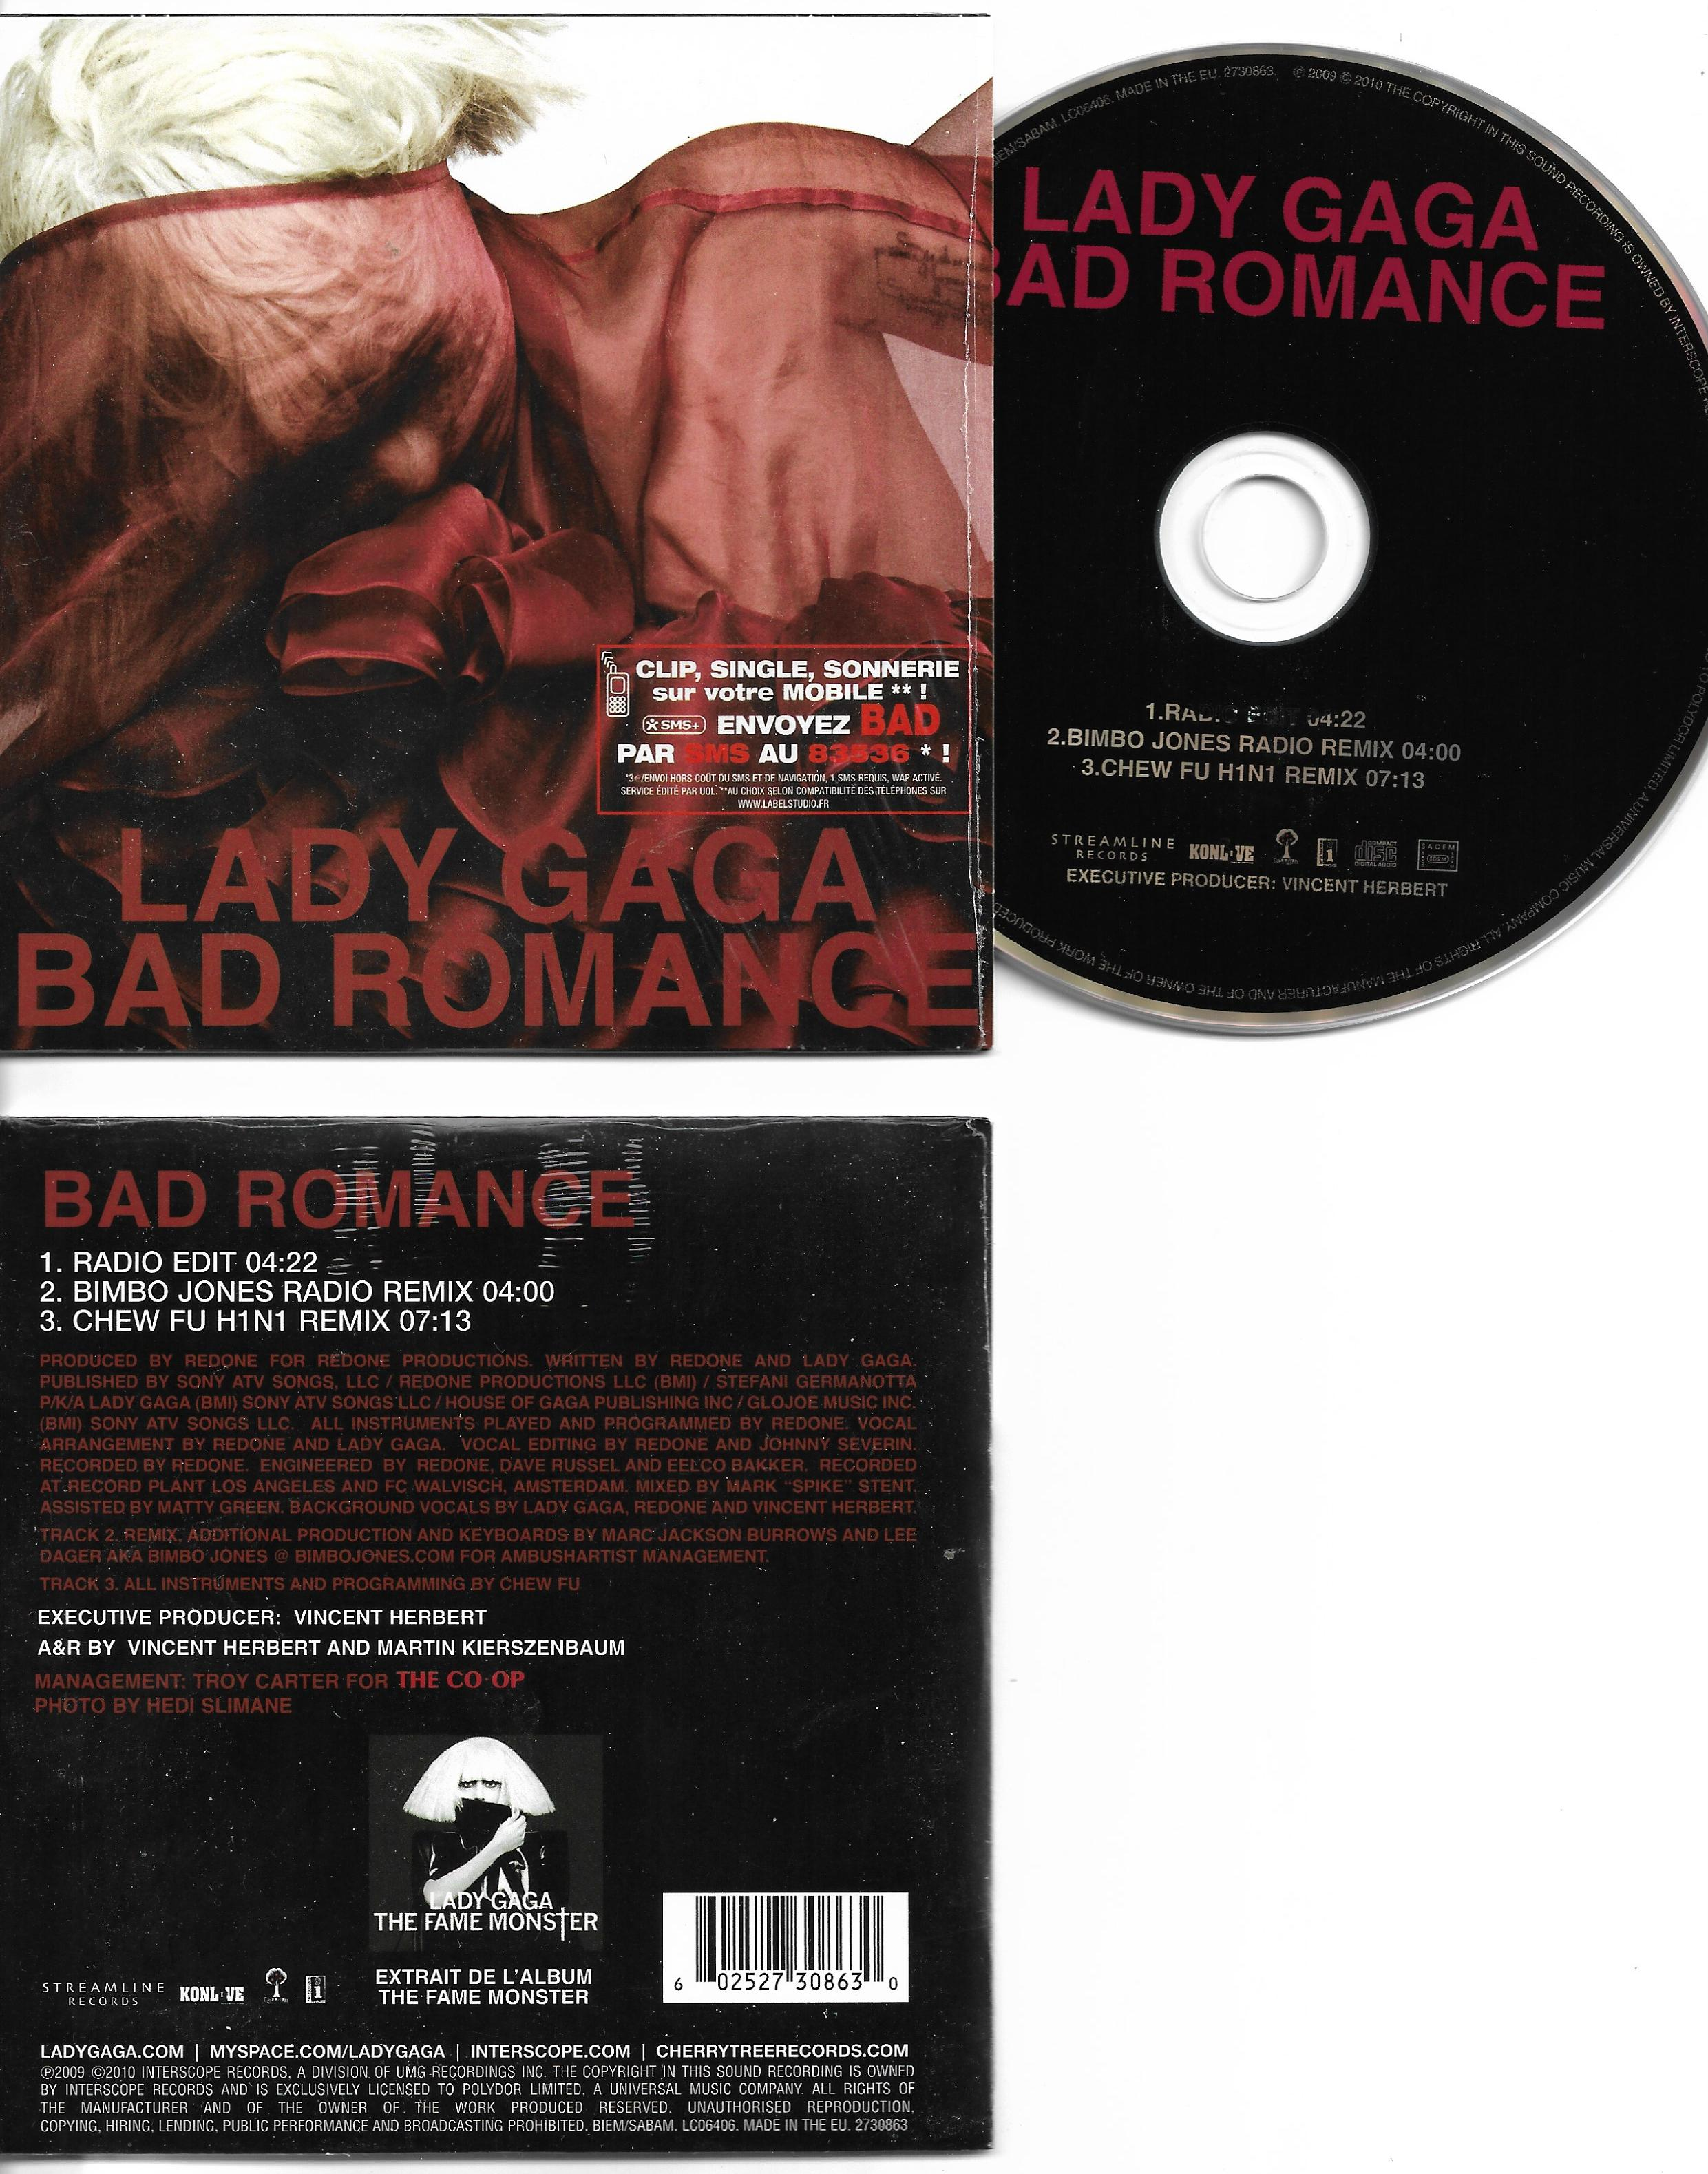 LADY GAGA - Bad romance CARD SLEEVE 3-track - CD single